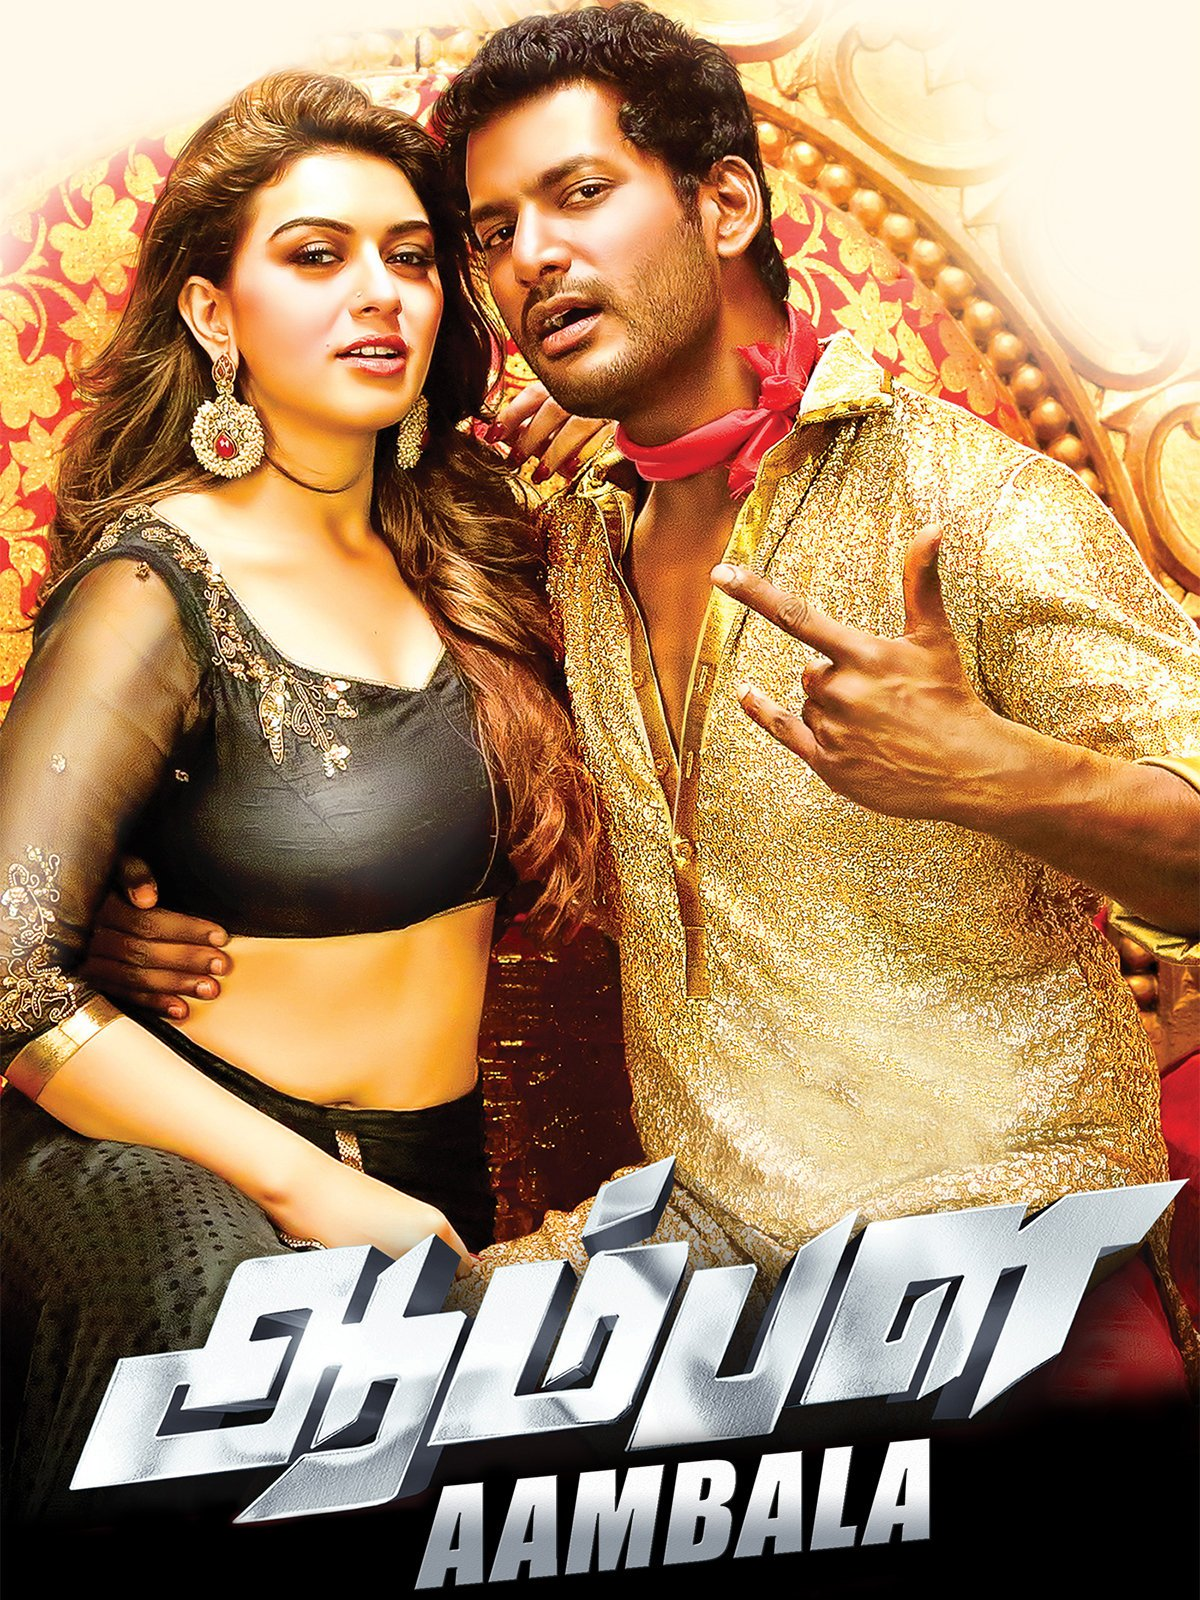 Aambala 2015 Hindi Dual Audio 720p UNCUT HDRip ESub 1.1GB Download